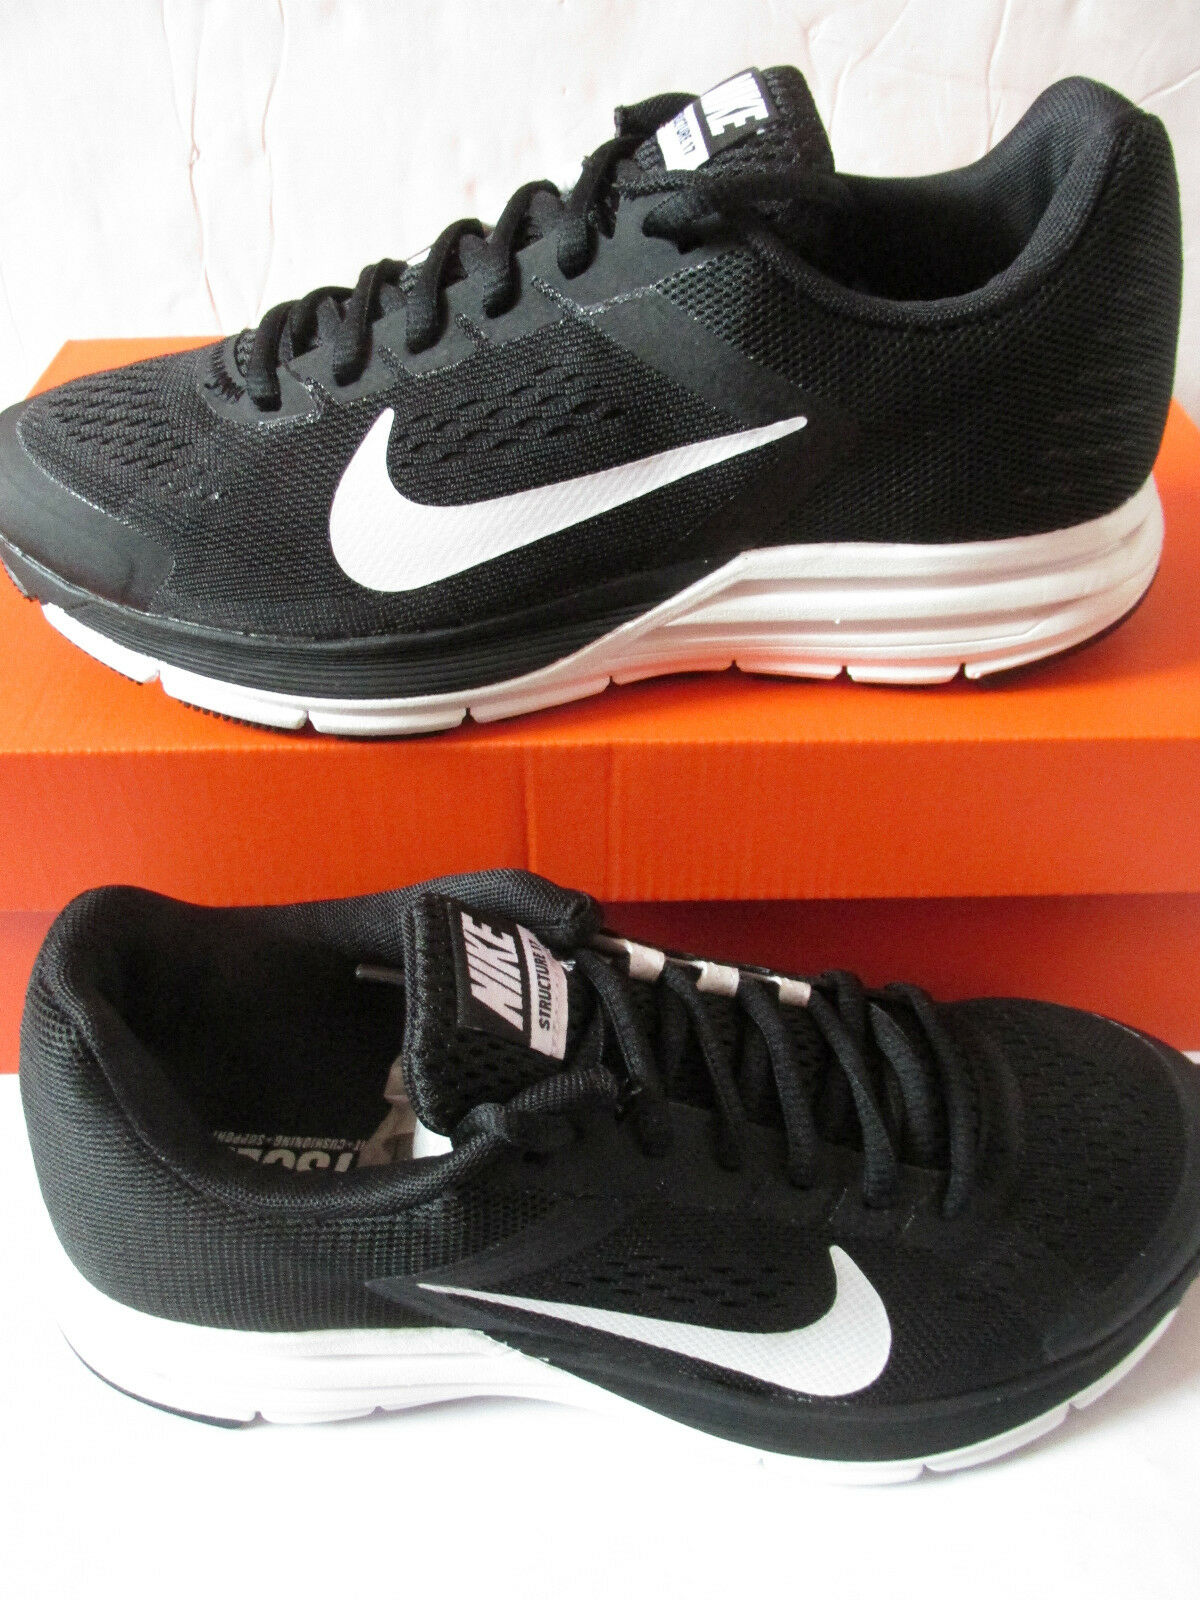 Nike womens zoom structure+ structure+ structure+ 17 running trainers 615588 010 sneakers shoes dc3481